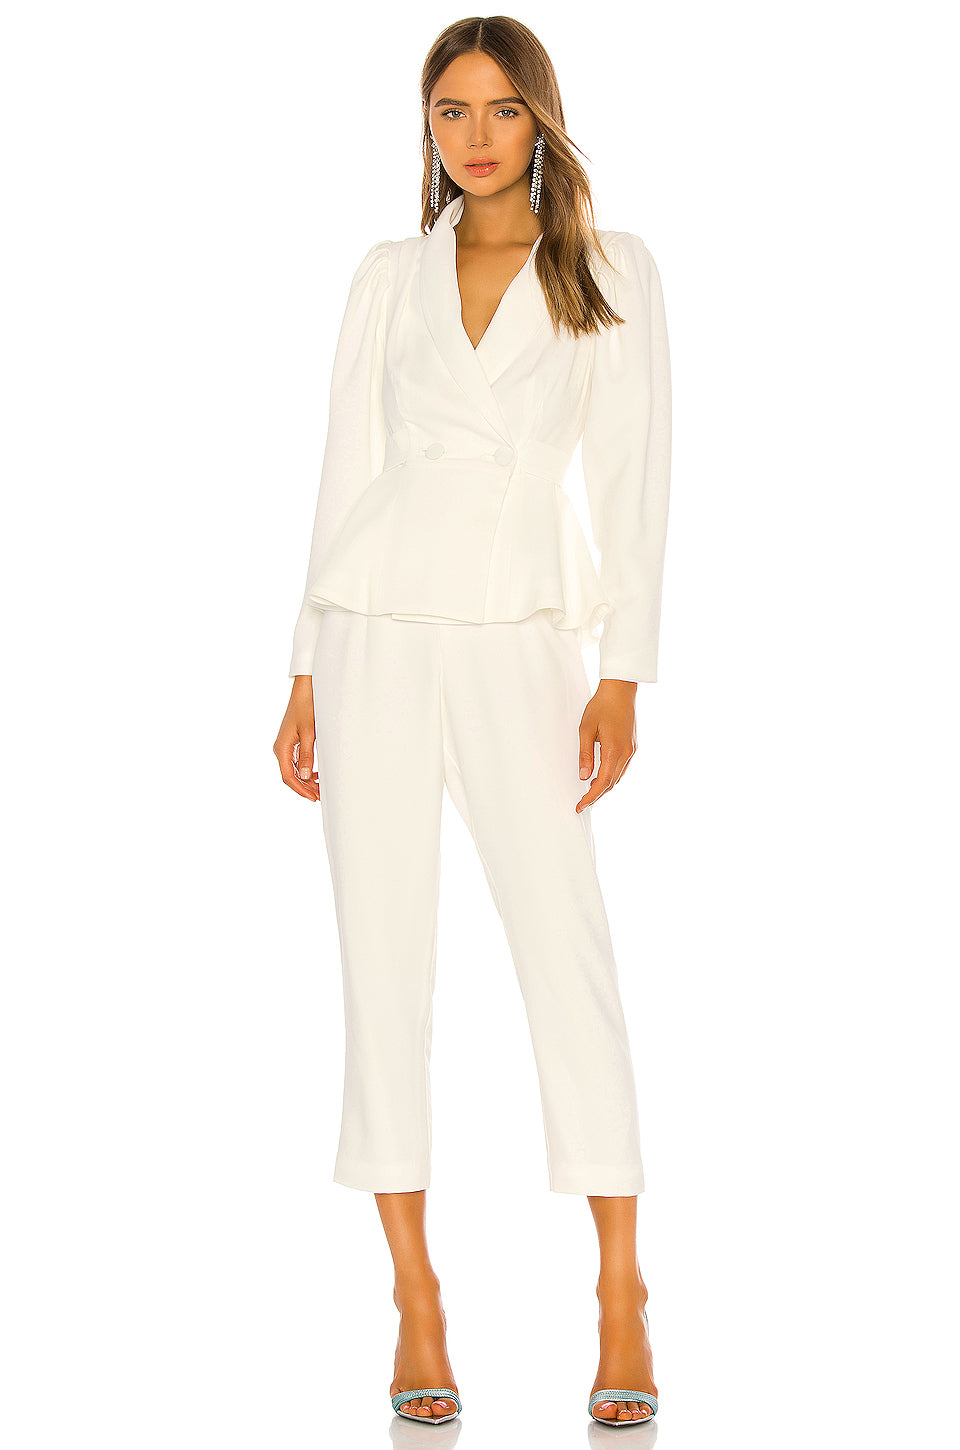 Aldina Jumpsuit in White